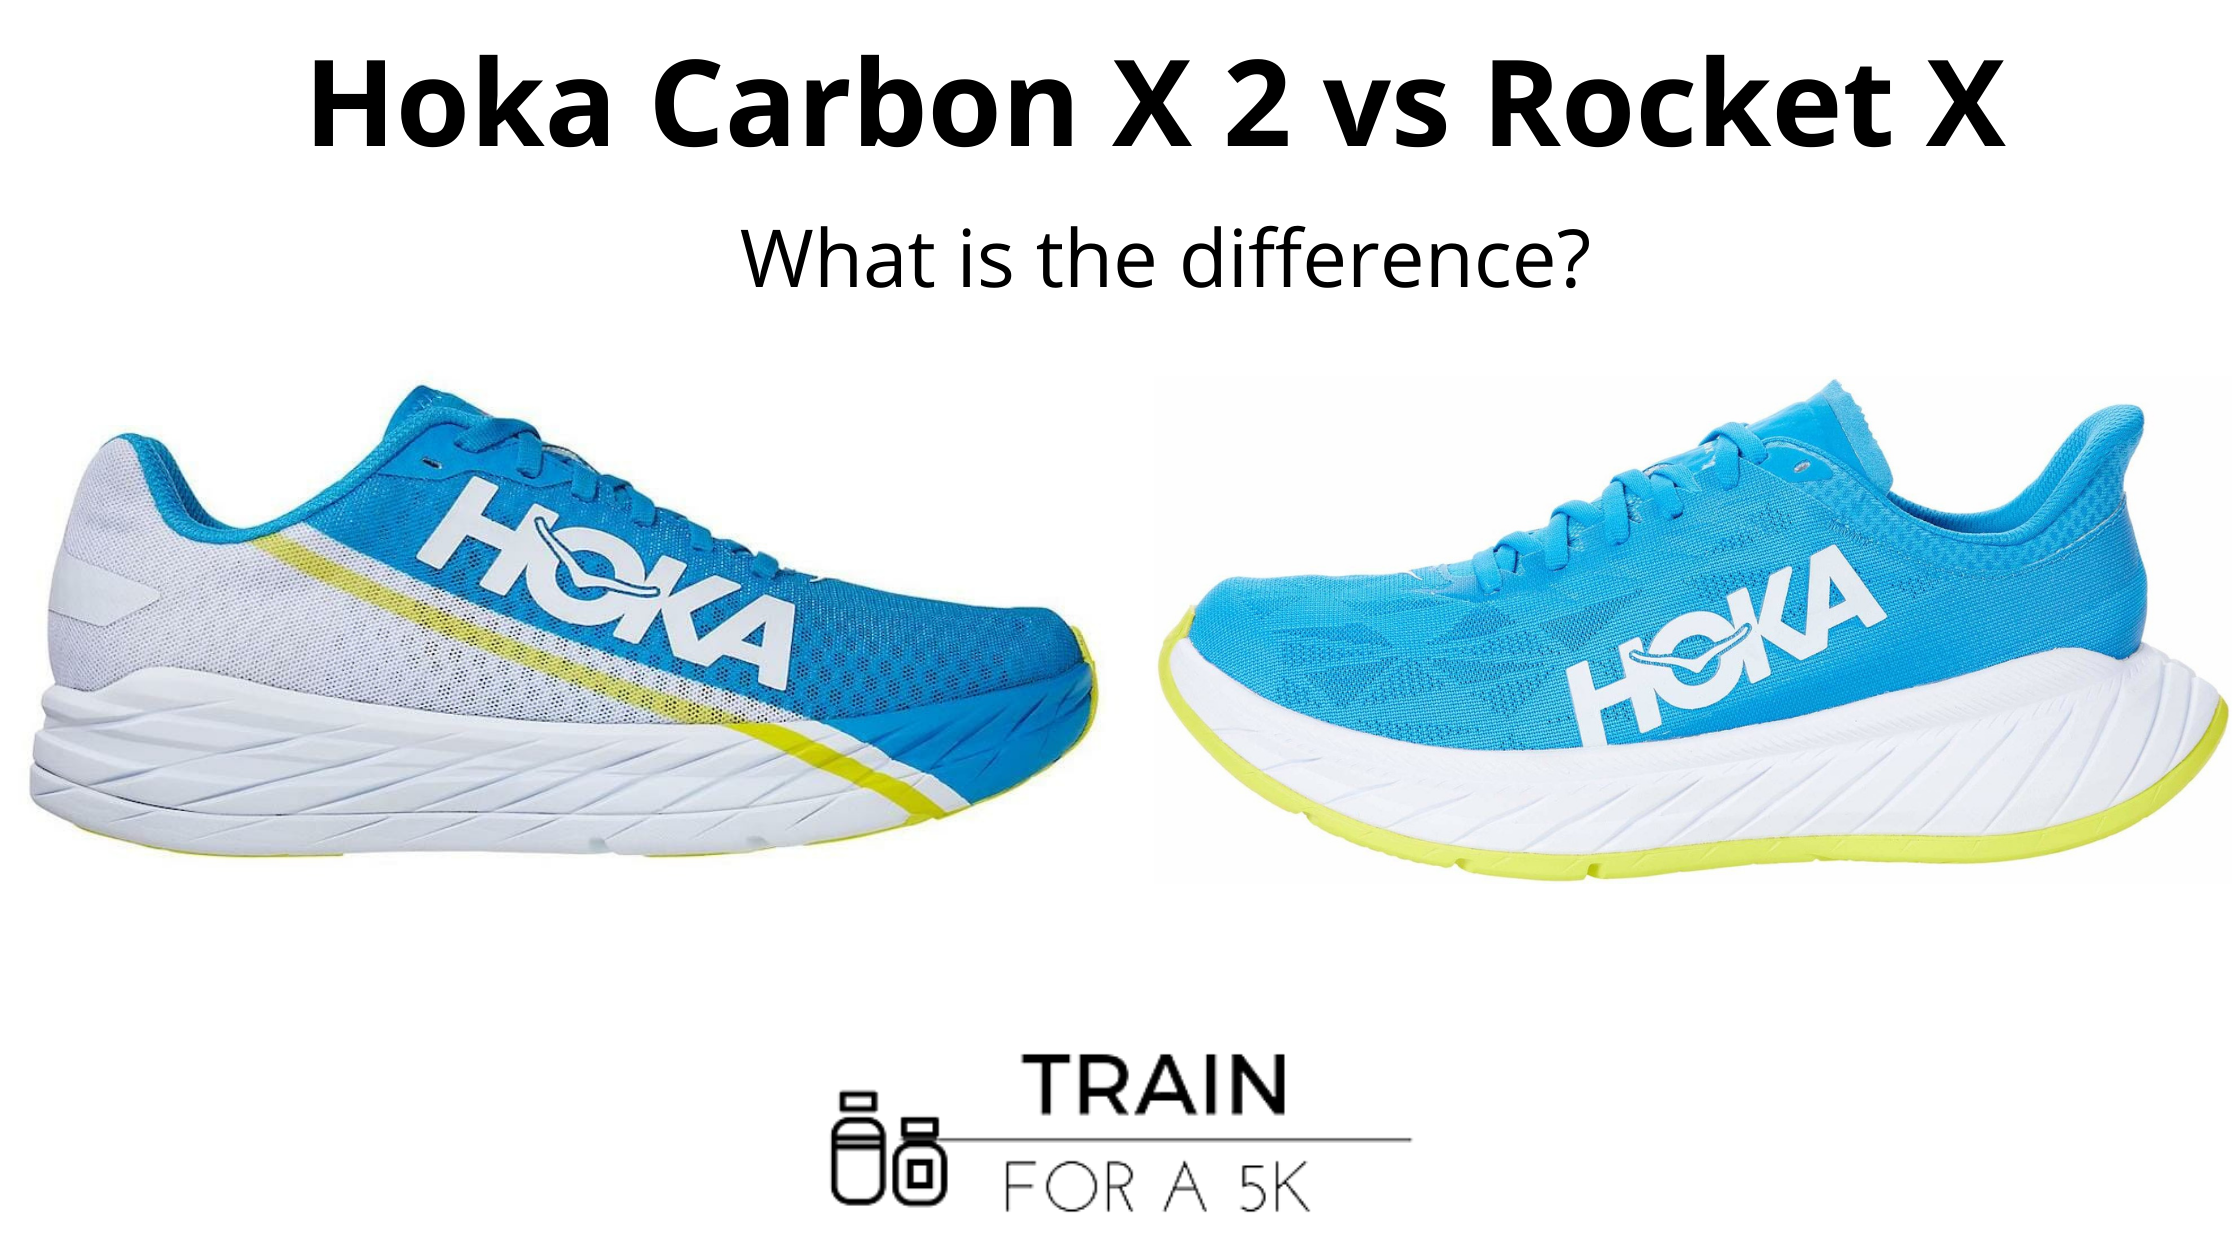 Hoka Carbon X 2 vs Rocket X: you are here to know which Hoka carbon plated super shoe is right for you, so let's get into the breakdown.